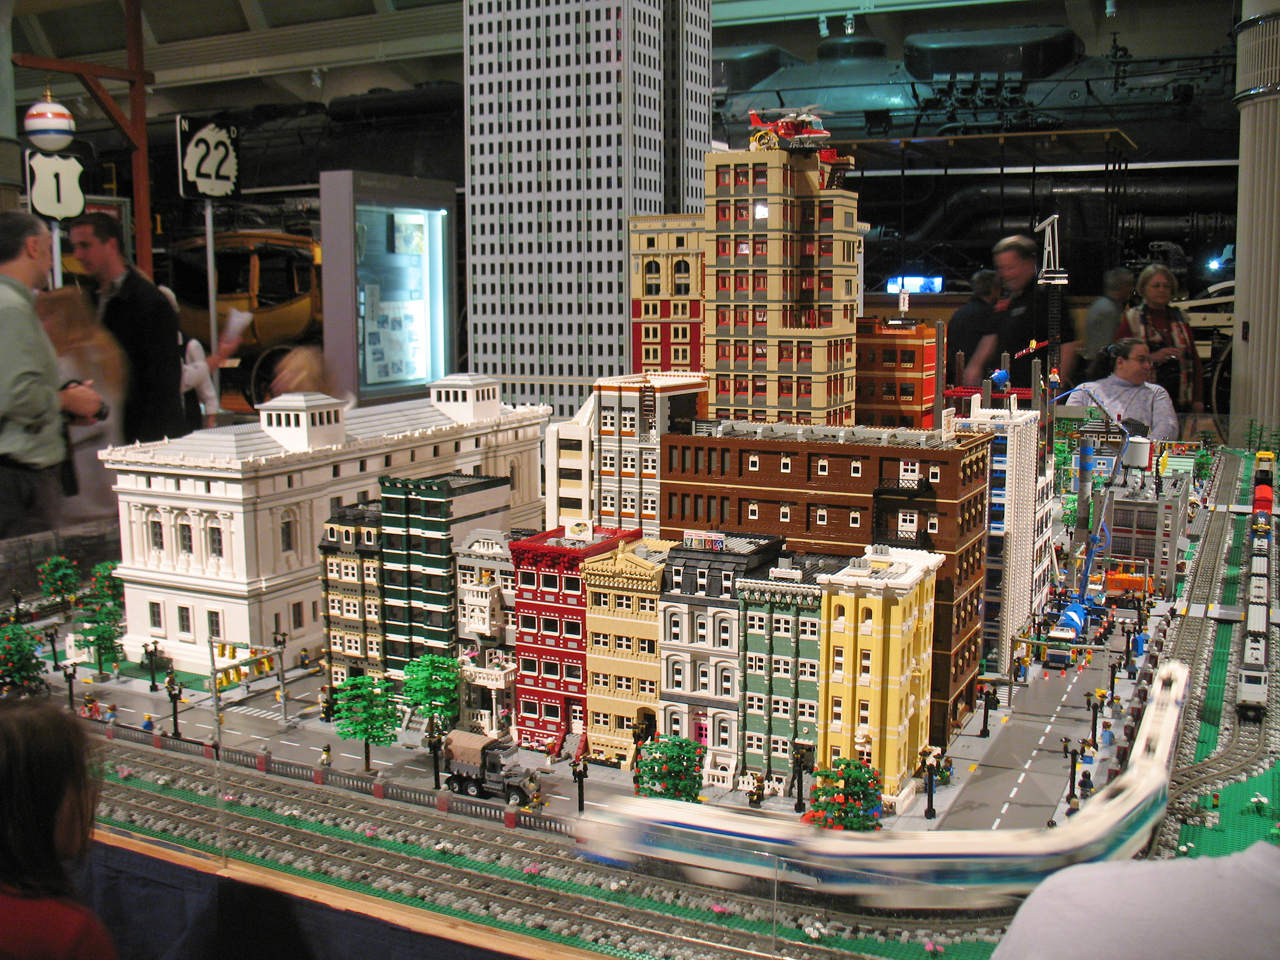 Midwestern Auto Group >> Lego City and train layout at The Henry Ford Museum - a ...